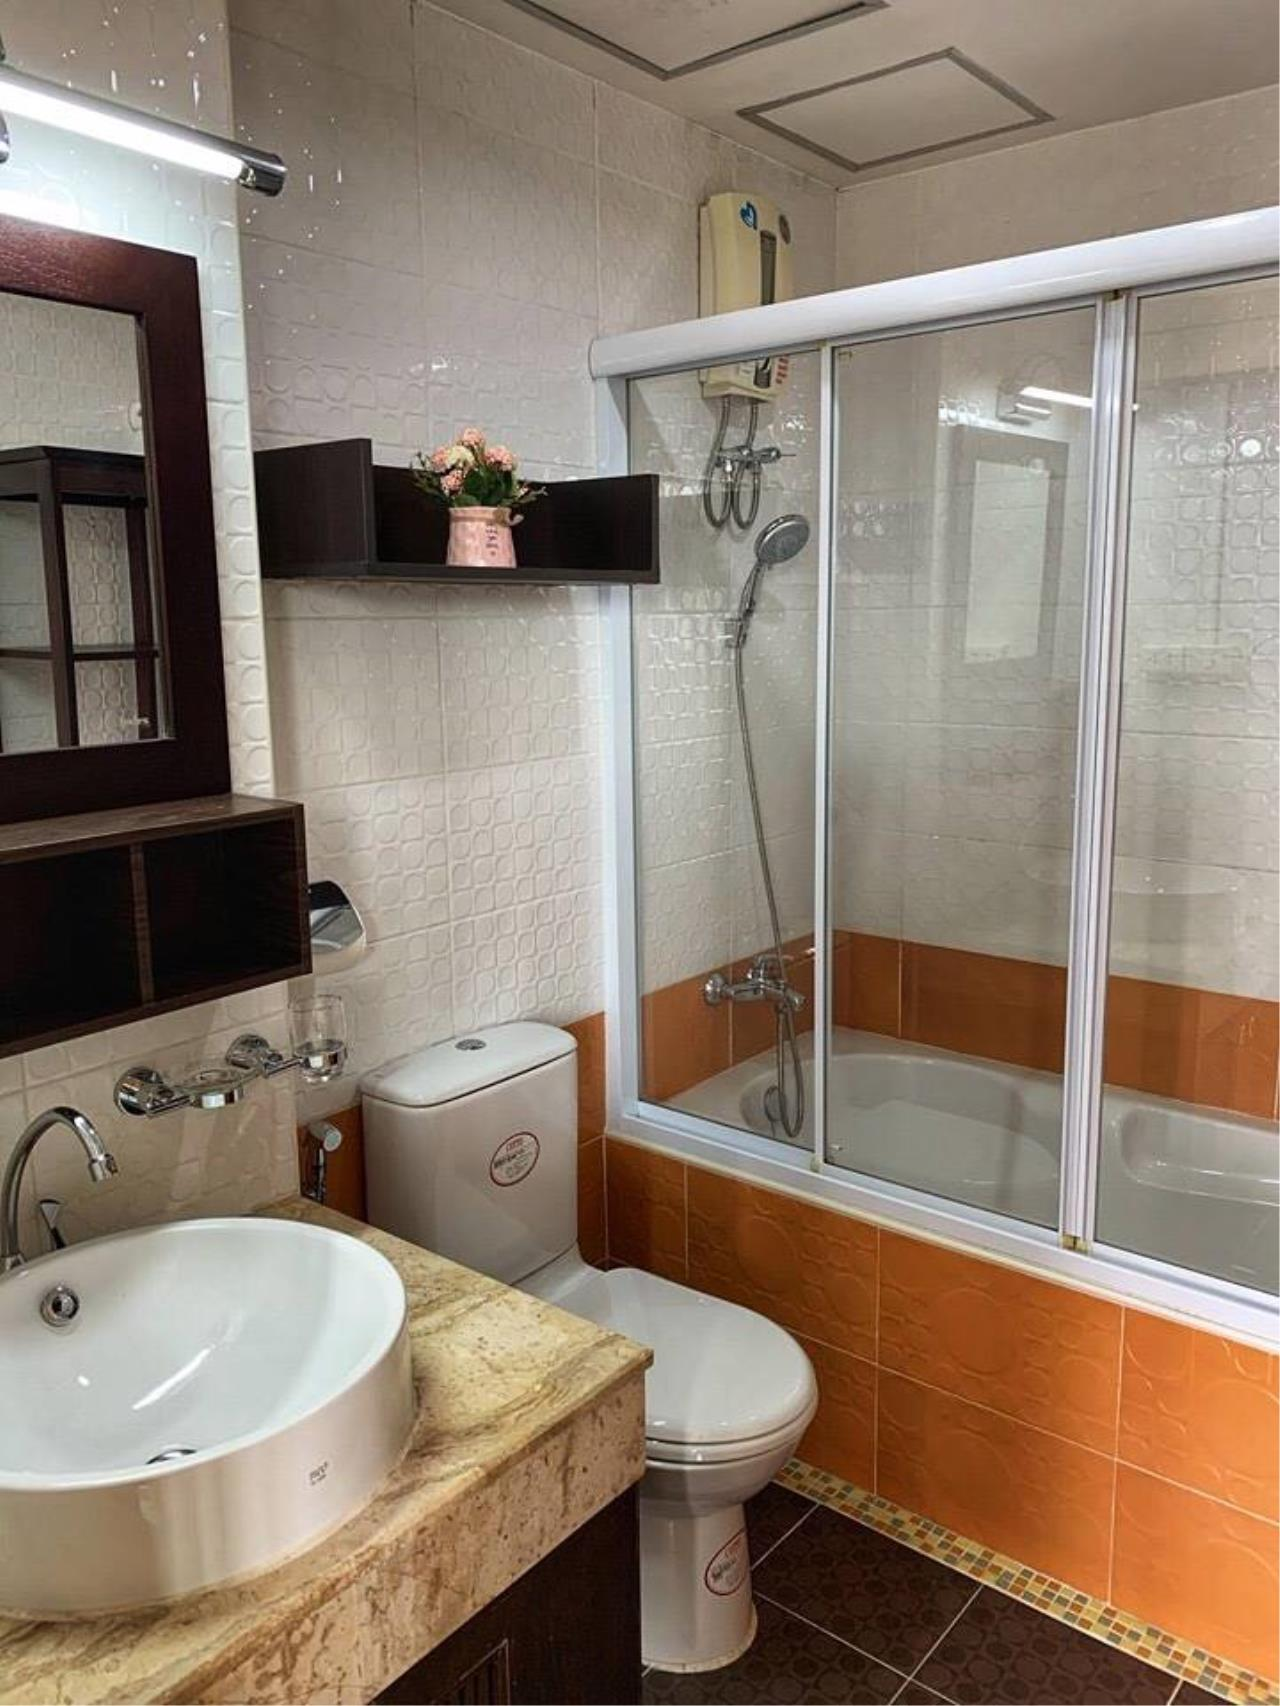 First Choice Properties by Su Agent Agency's KP037 RATCHADA CITY 18 for sale 1.87 M. 1bedroom. 34 sq.m. @MRT Huai Khwang 8